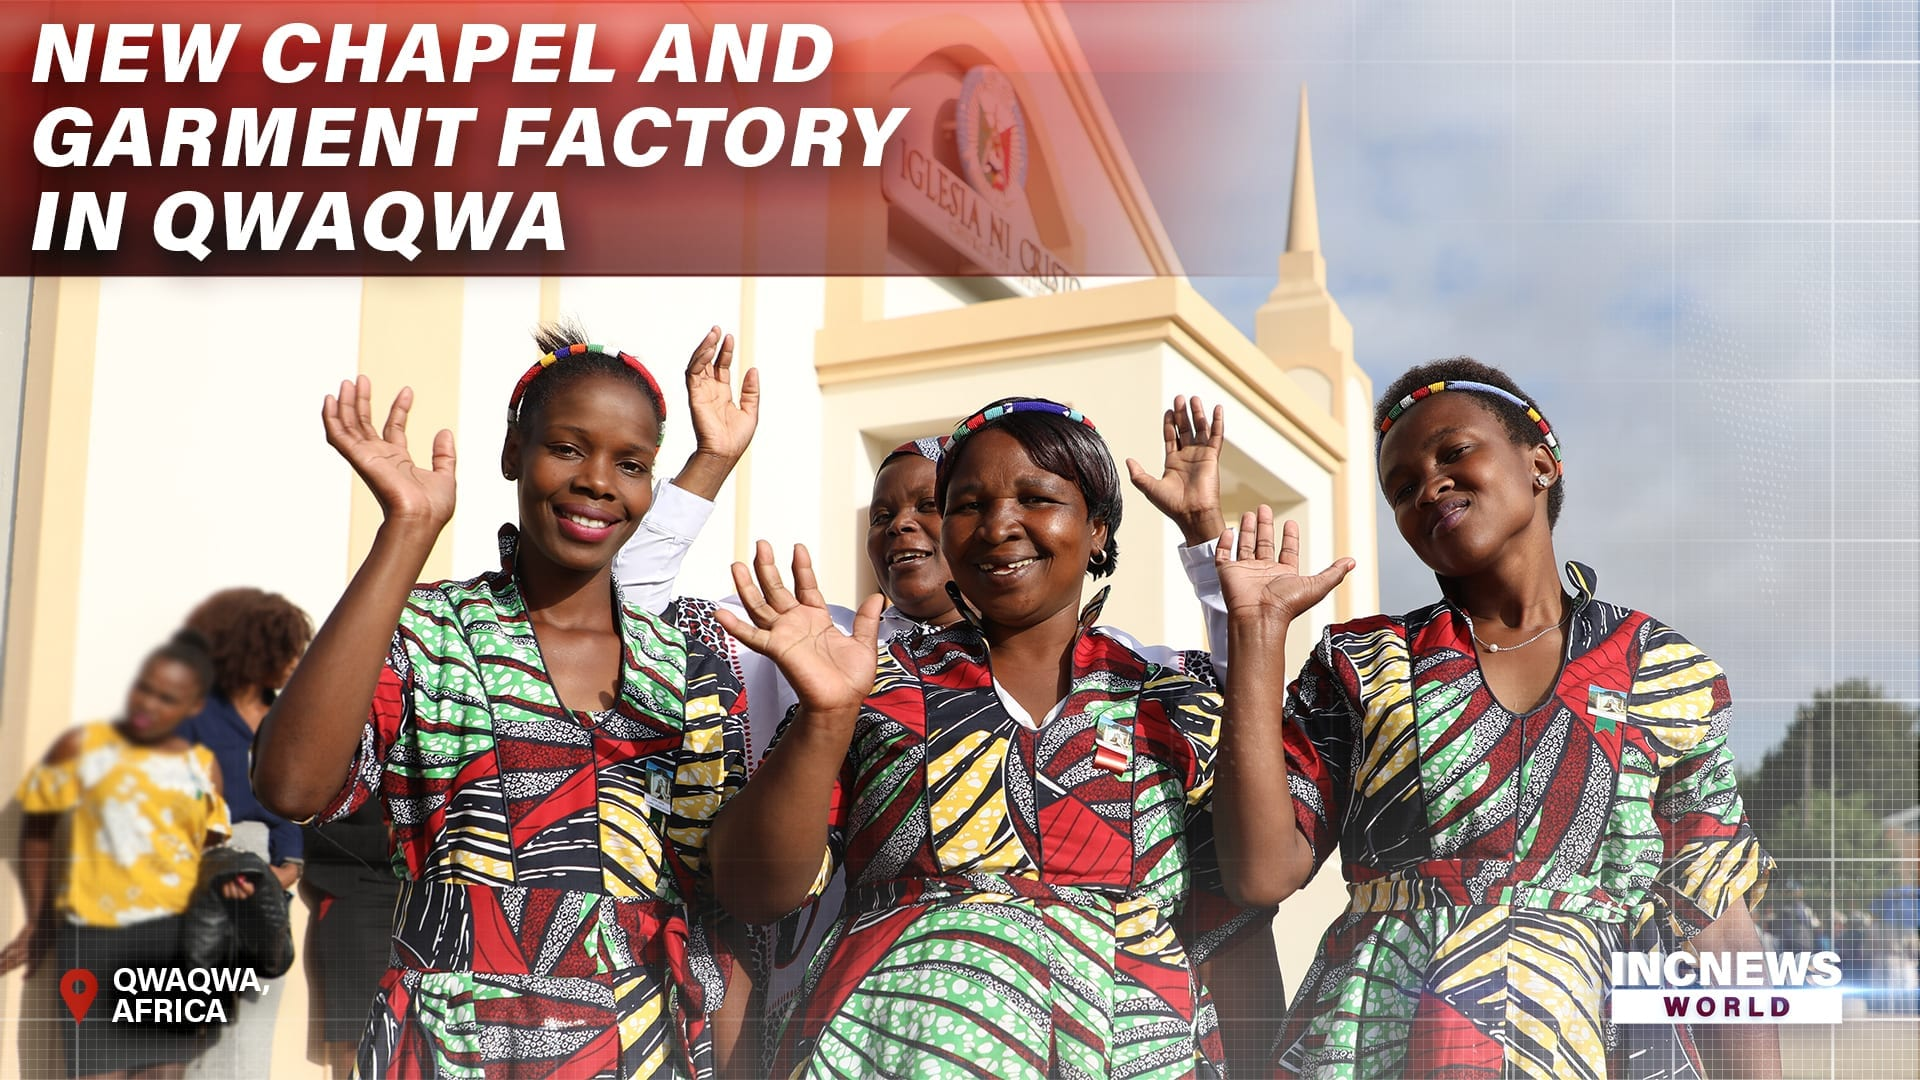 New Chapel and Garment Factory in Qwaqwa